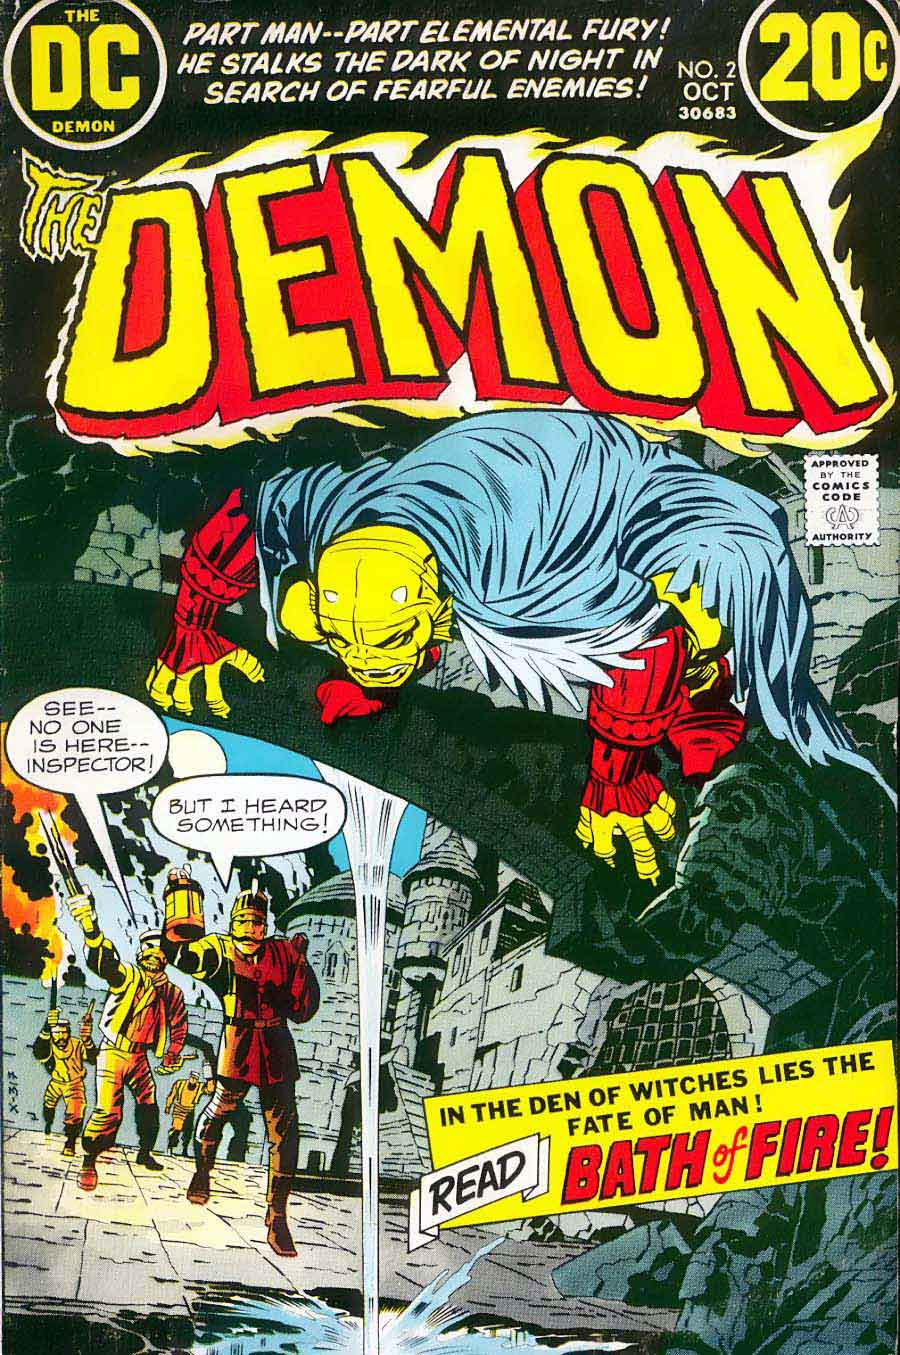 Demon v1 #2 dc bronze age comic book cover art by Jack Kirby